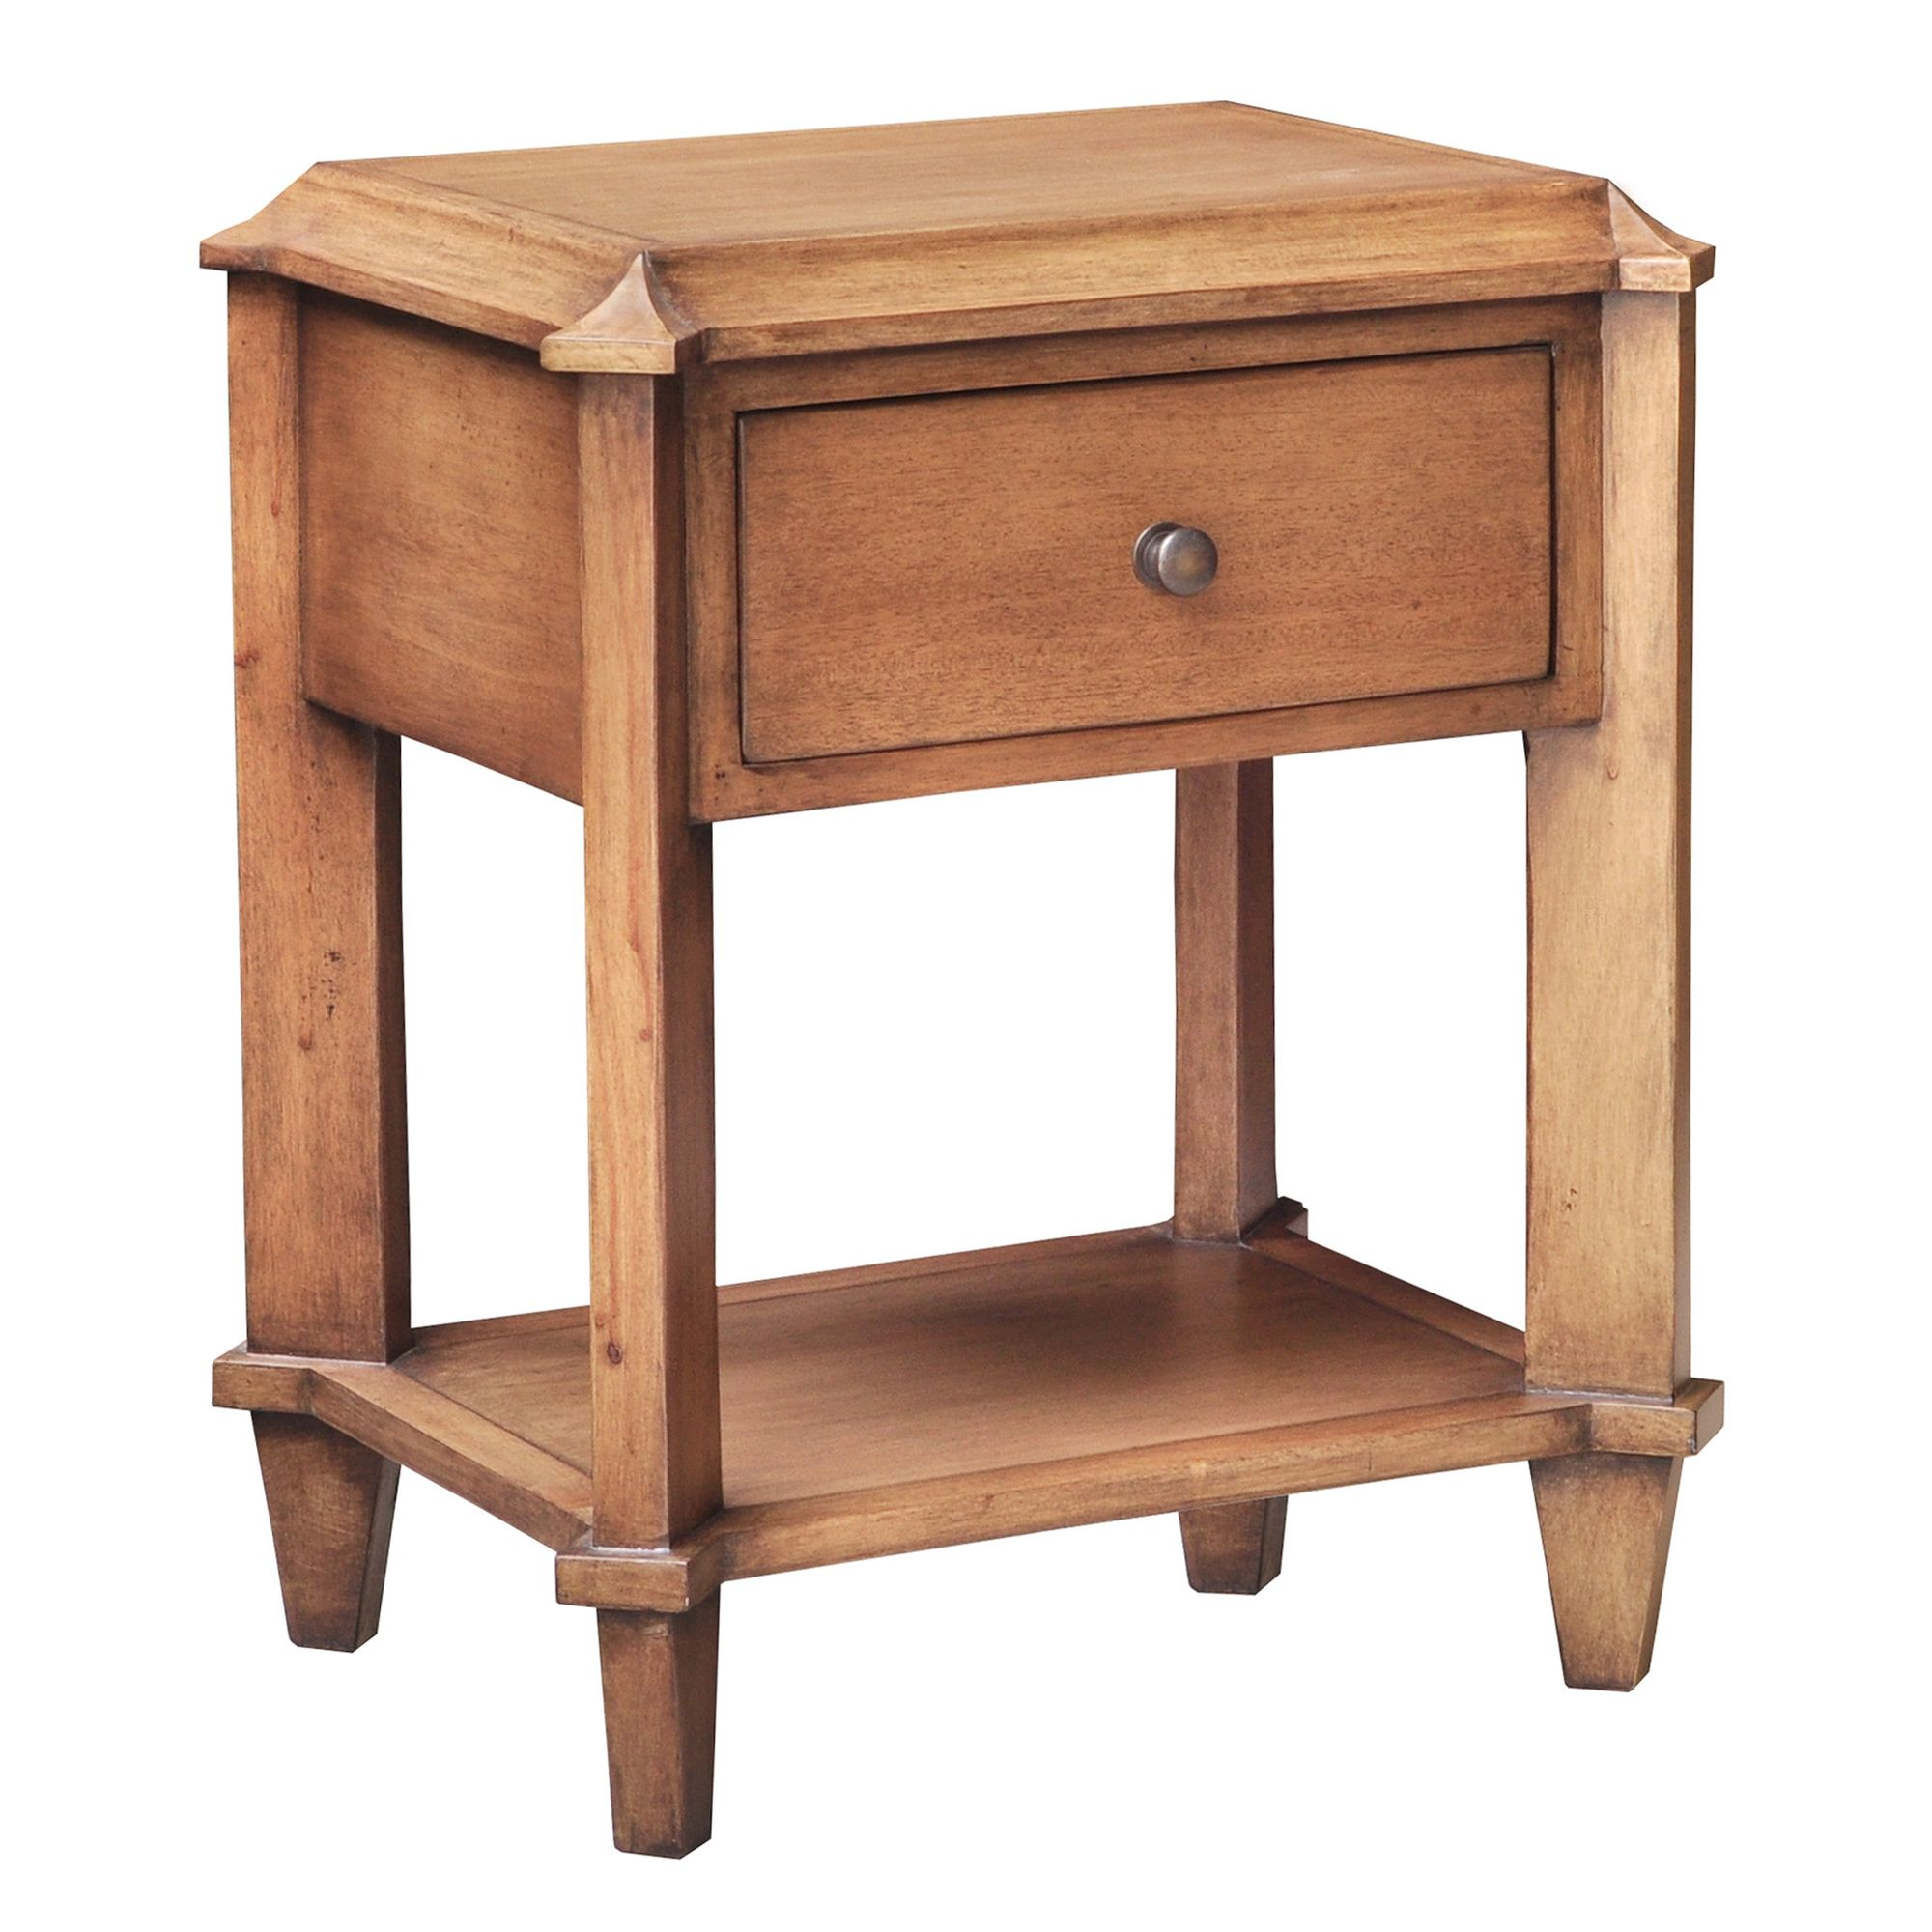 Lock stock and barrel Shell Knowle Side Table in Mahogany at Tesco Direct